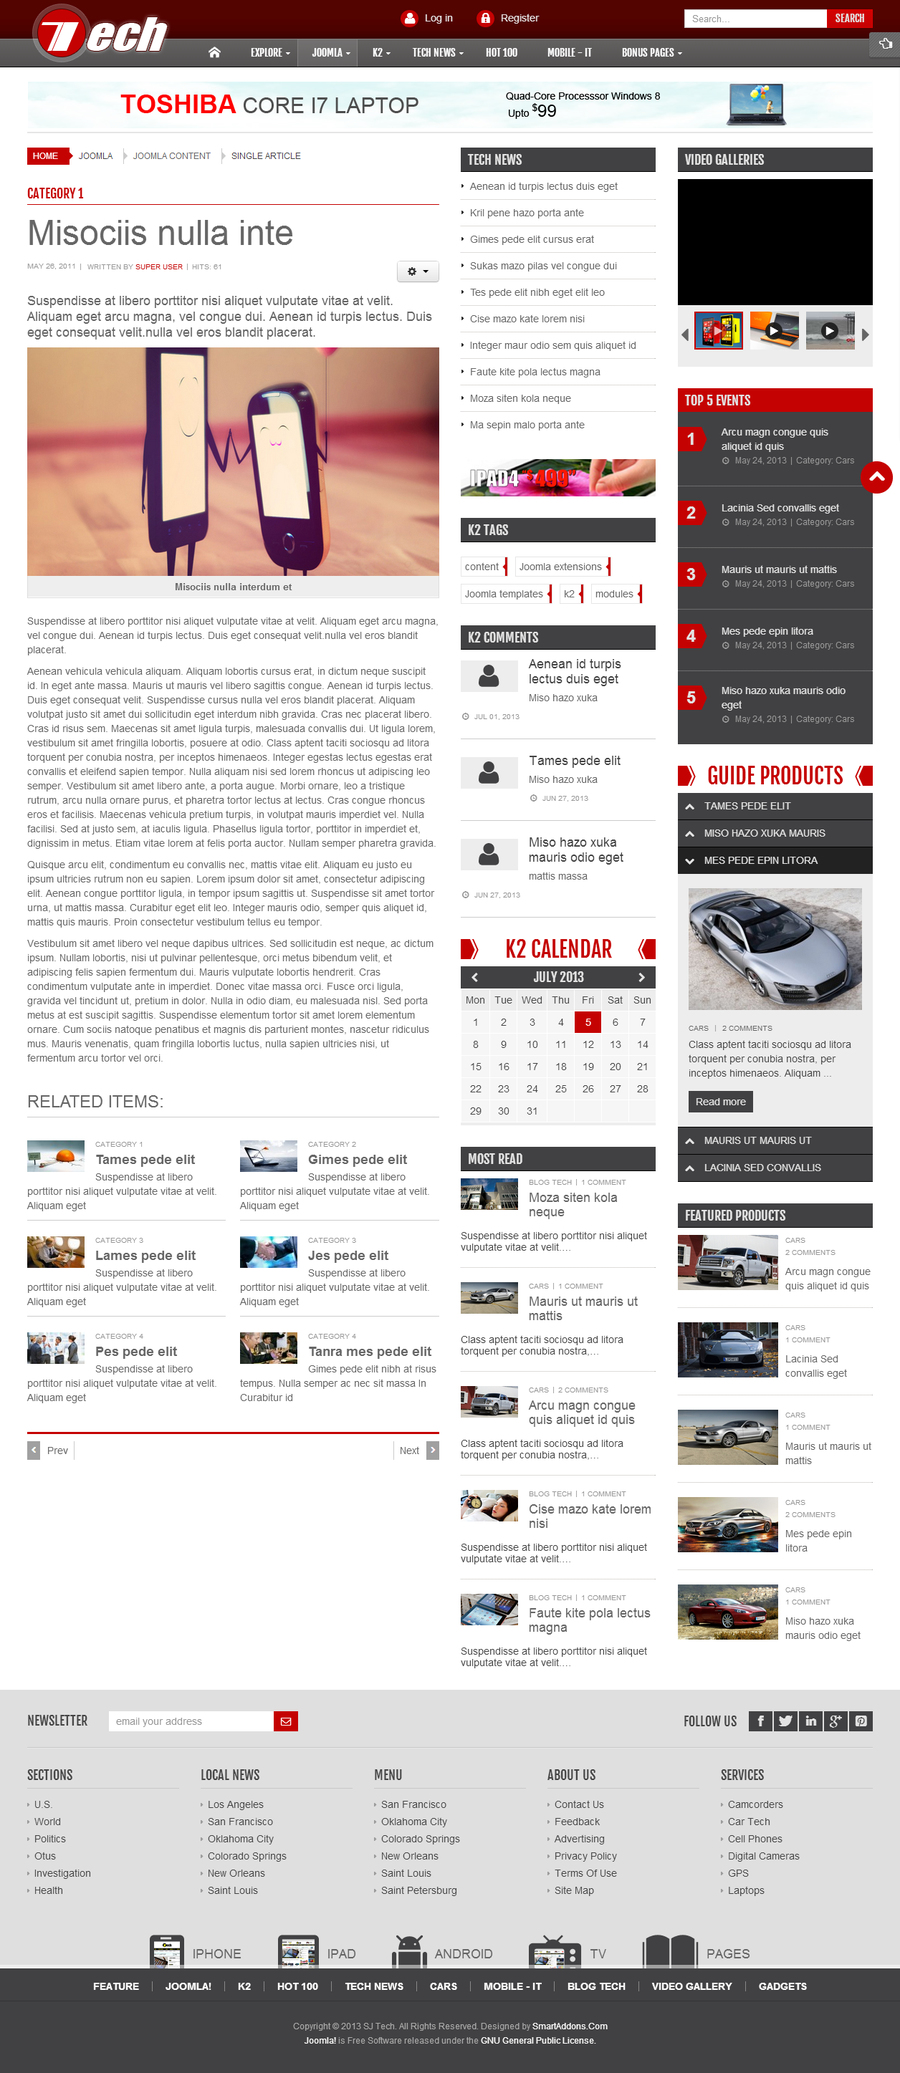 SJ Tech - Responsive Joomla news magazine Template for Tech - 03joomladetail.jpg